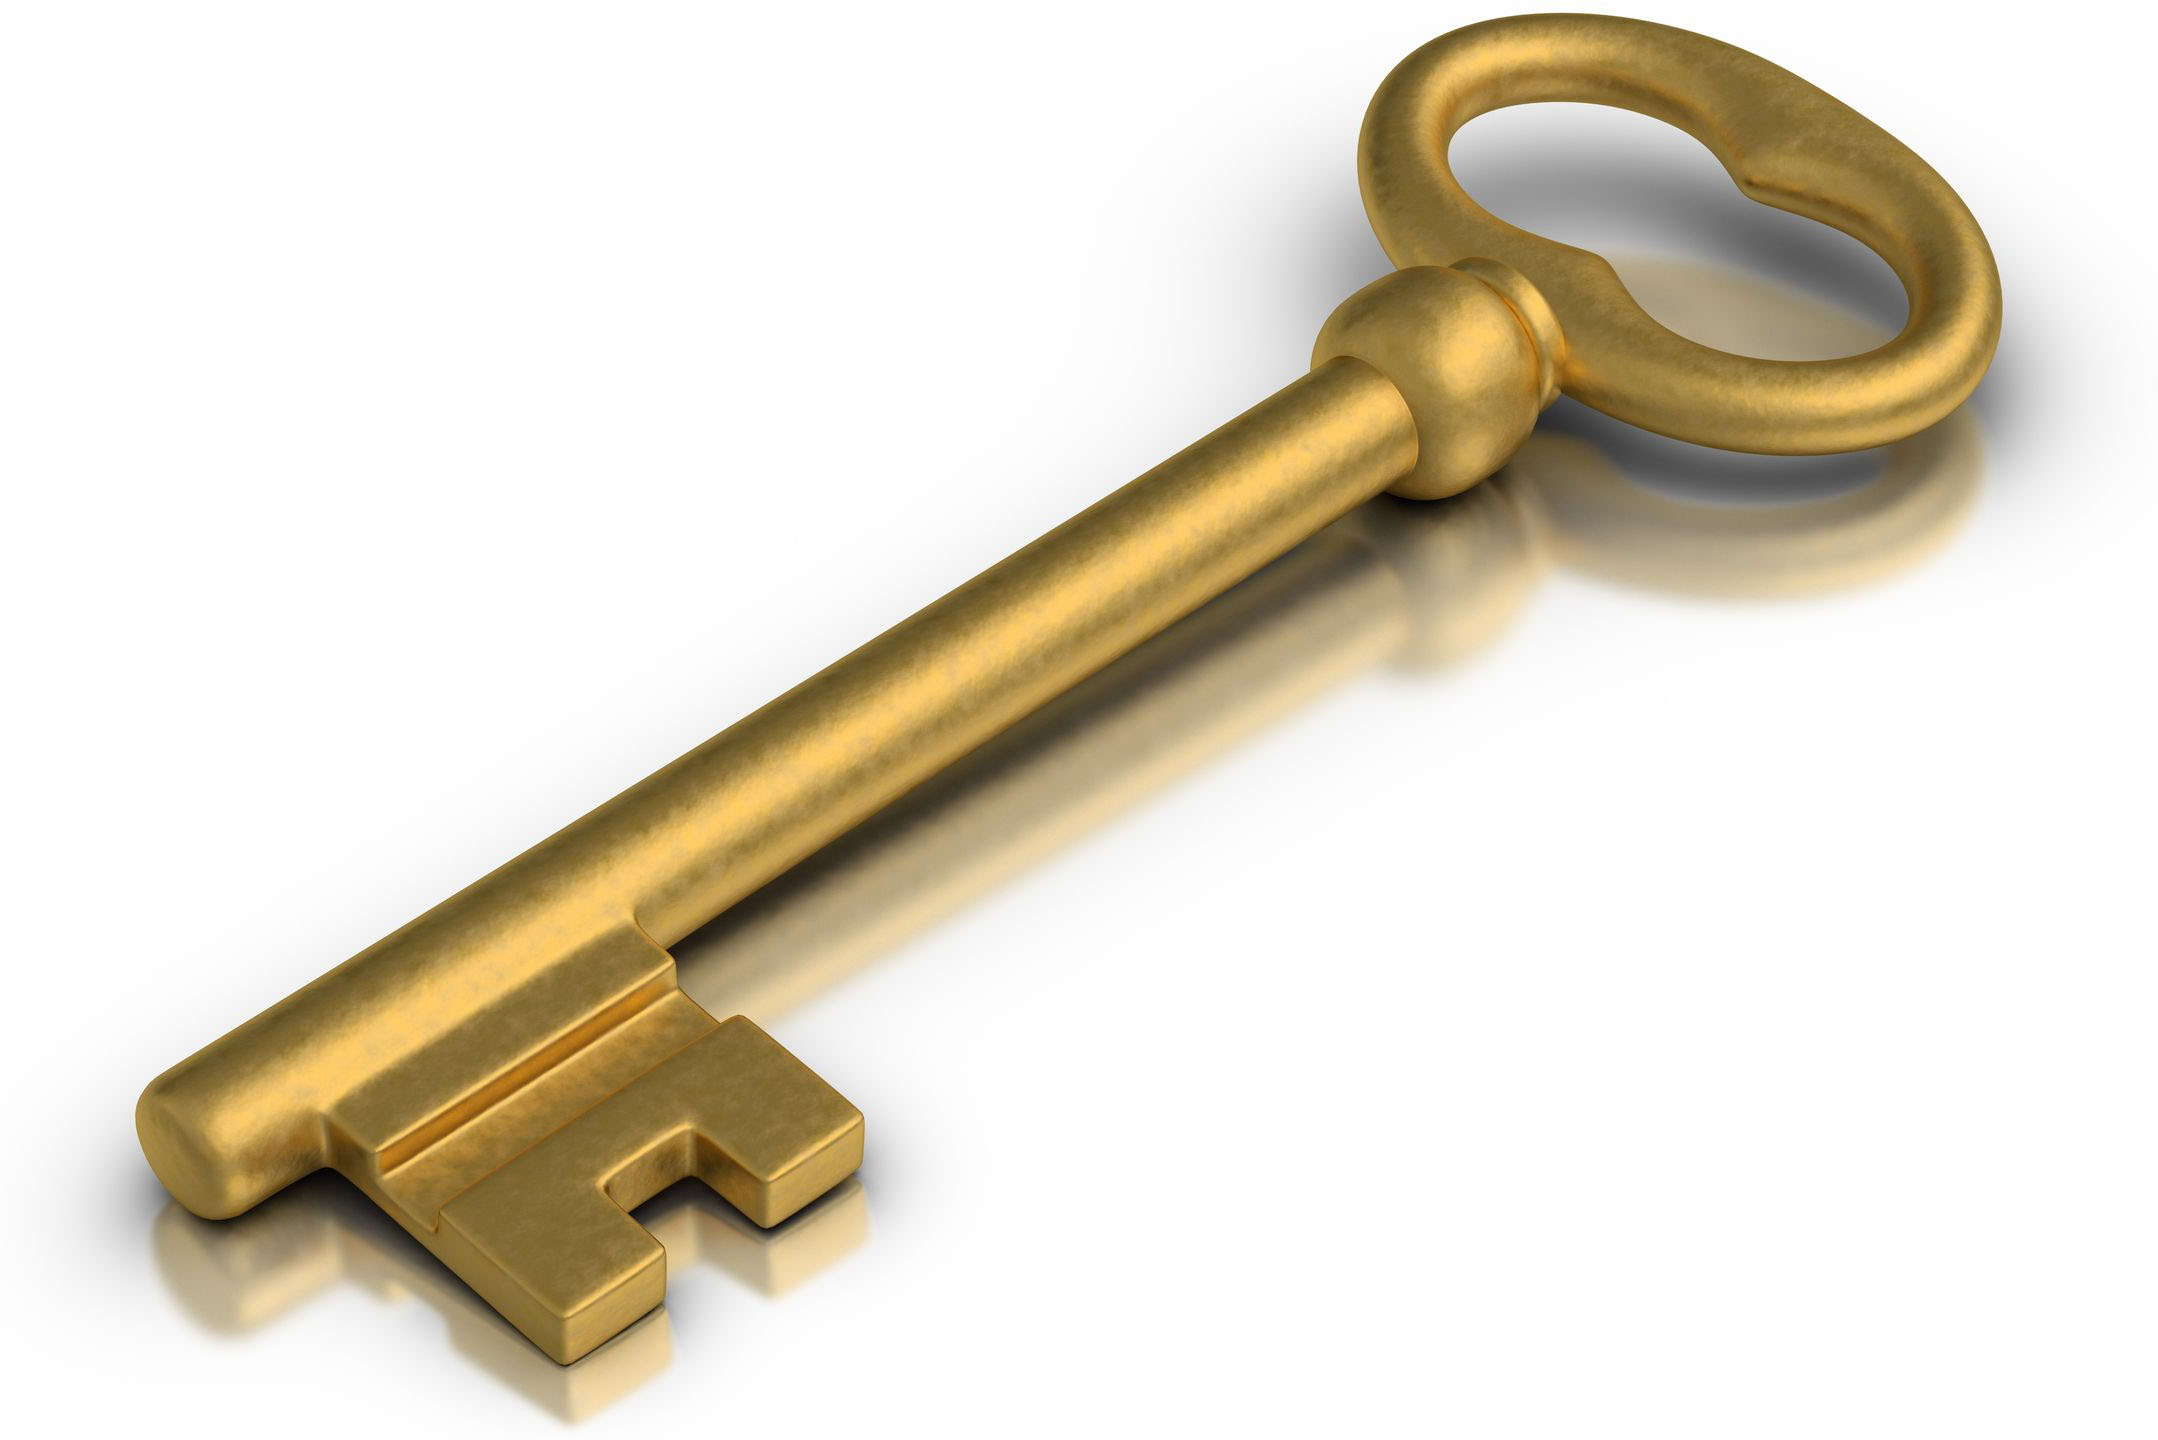 Golden Key - LIBERTY (PRIVACY SECURITY SAFETY) FREE WILL